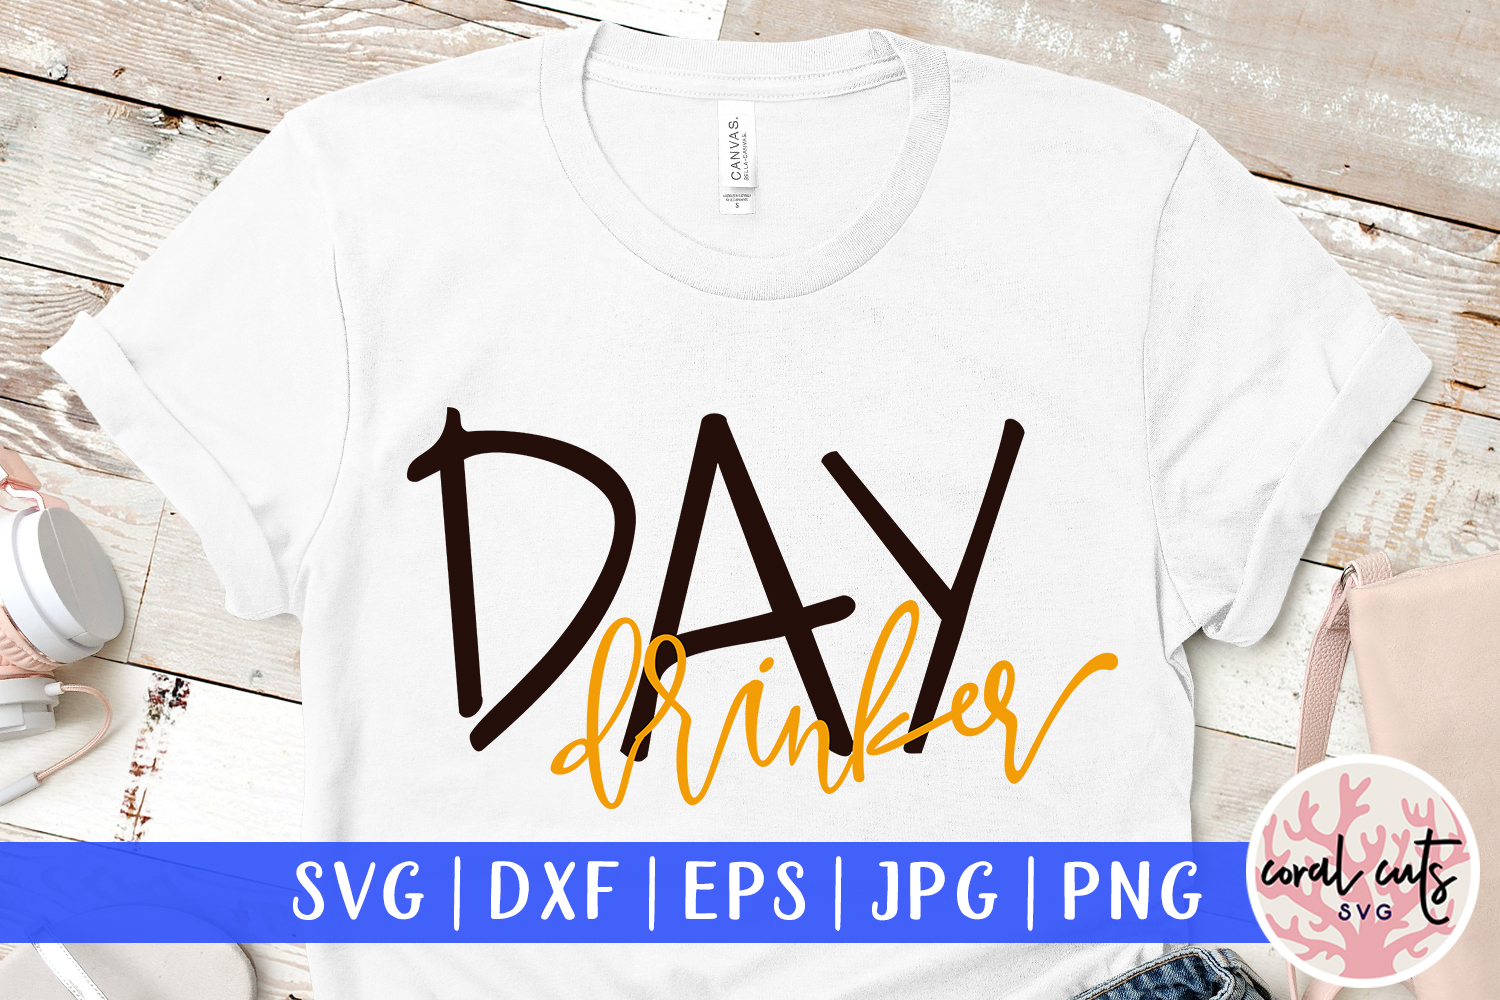 Day drinker - SVG EPS DXF PNG Cutting File example image 1